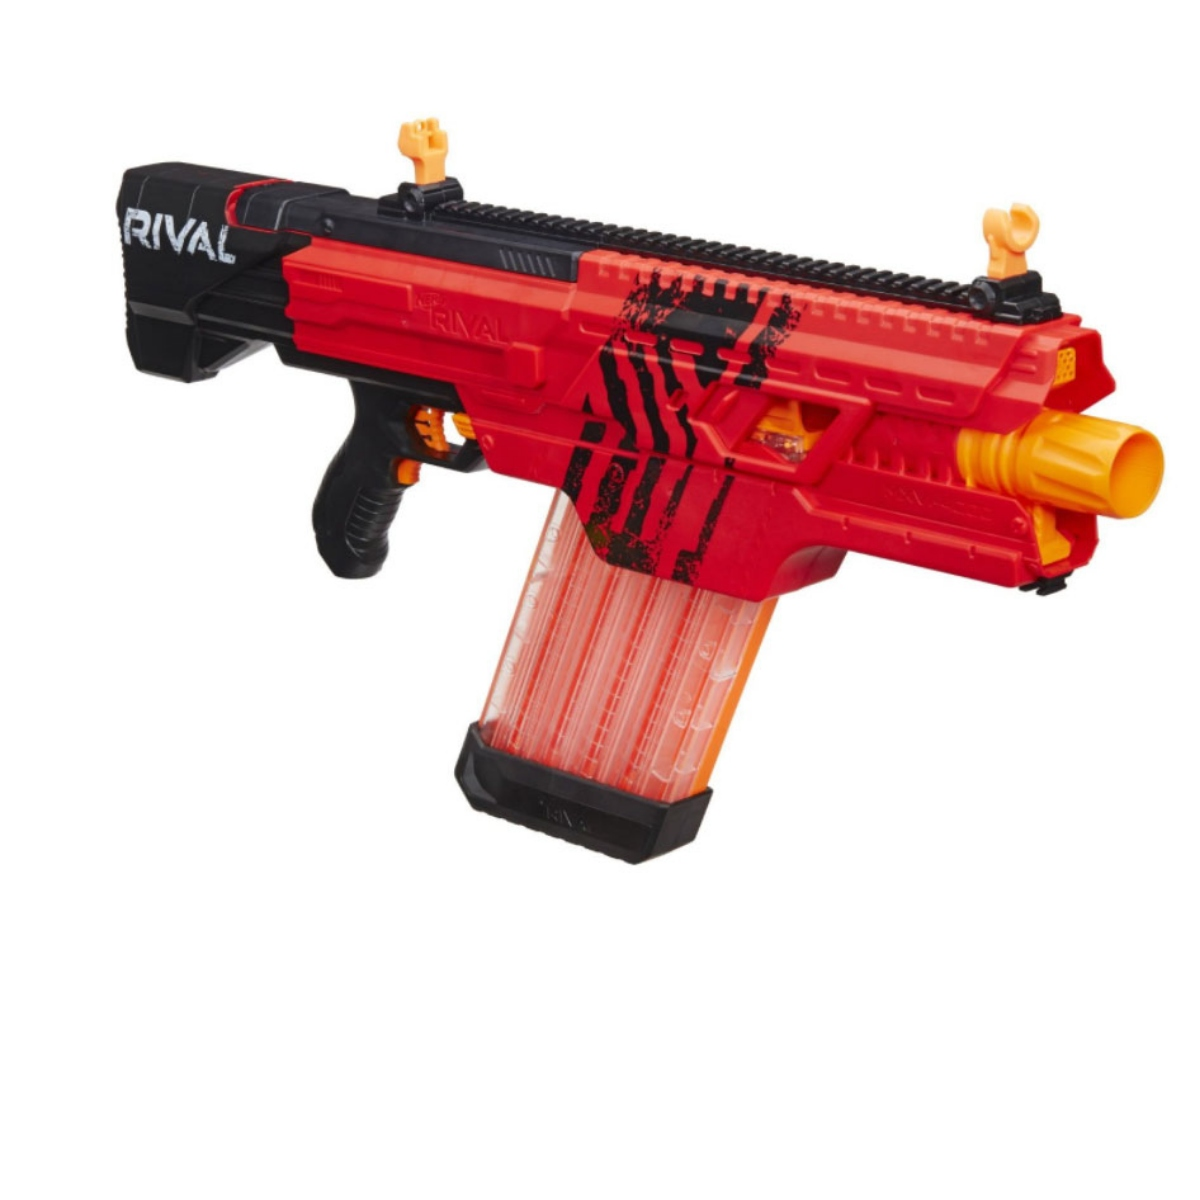 Nerf Rival Khaos MXVI-4000 Motorized Rapid Blaster Gun with 40 Rounds - Red